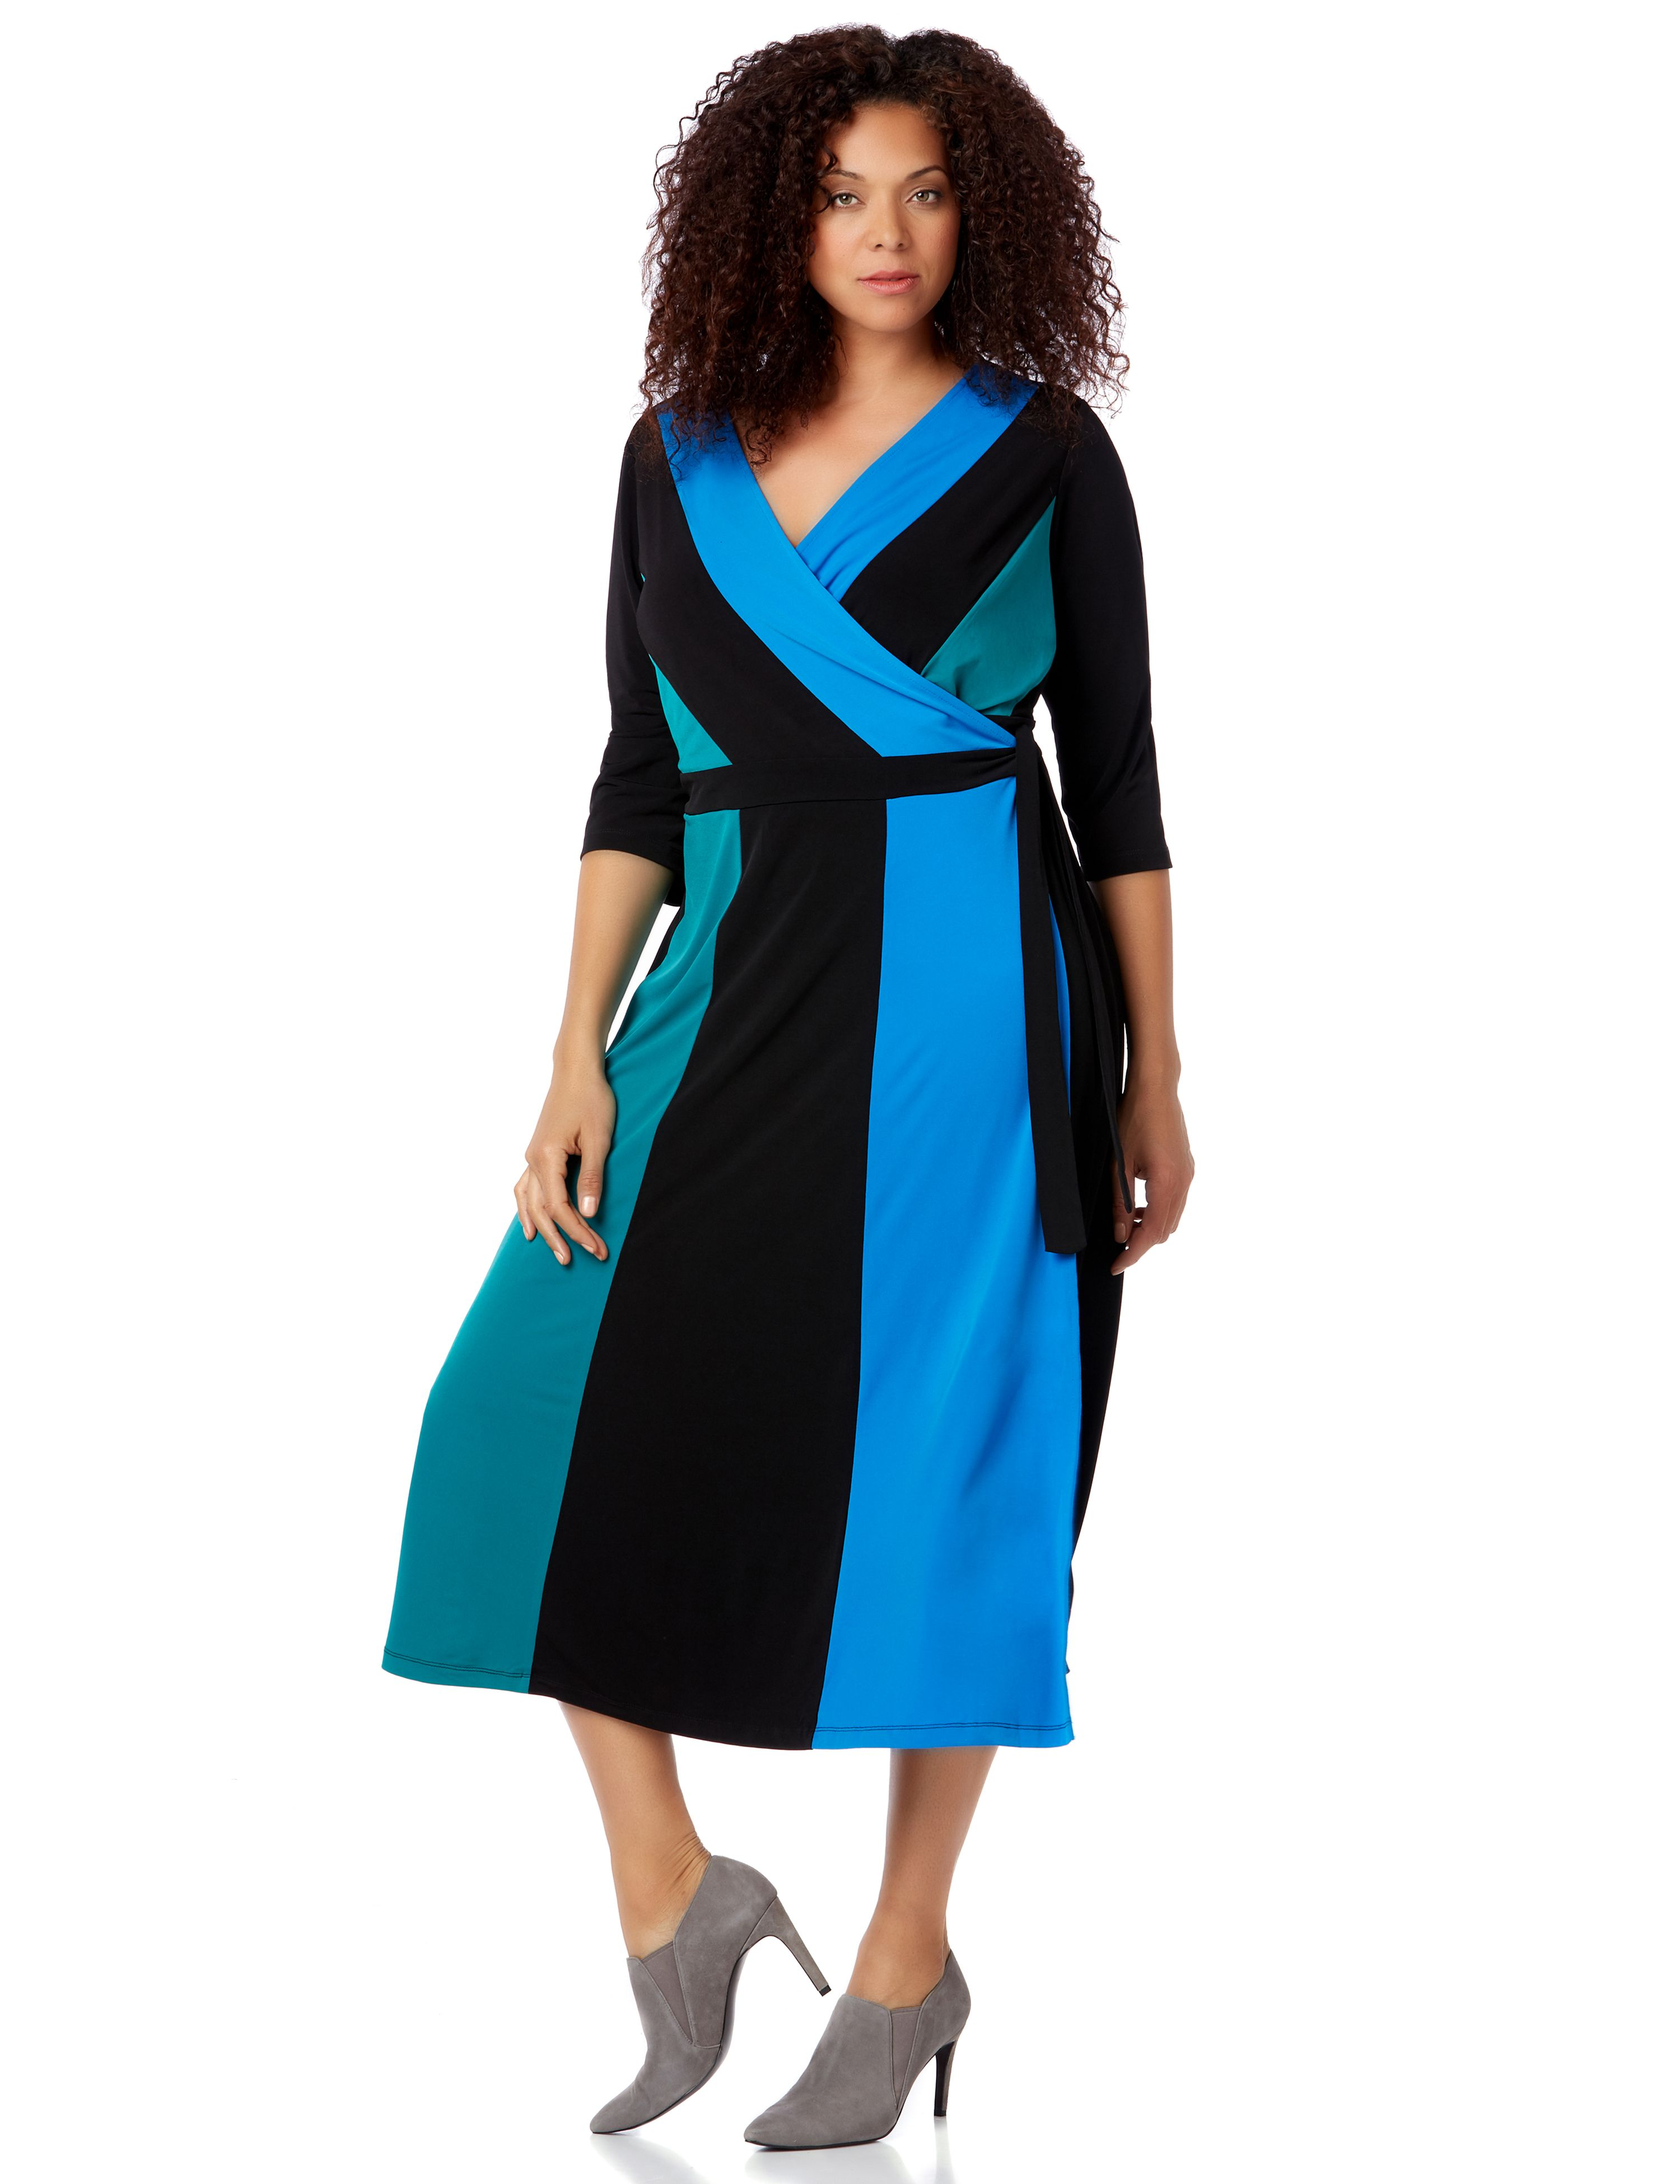 #catherines Aegean Dream Dress